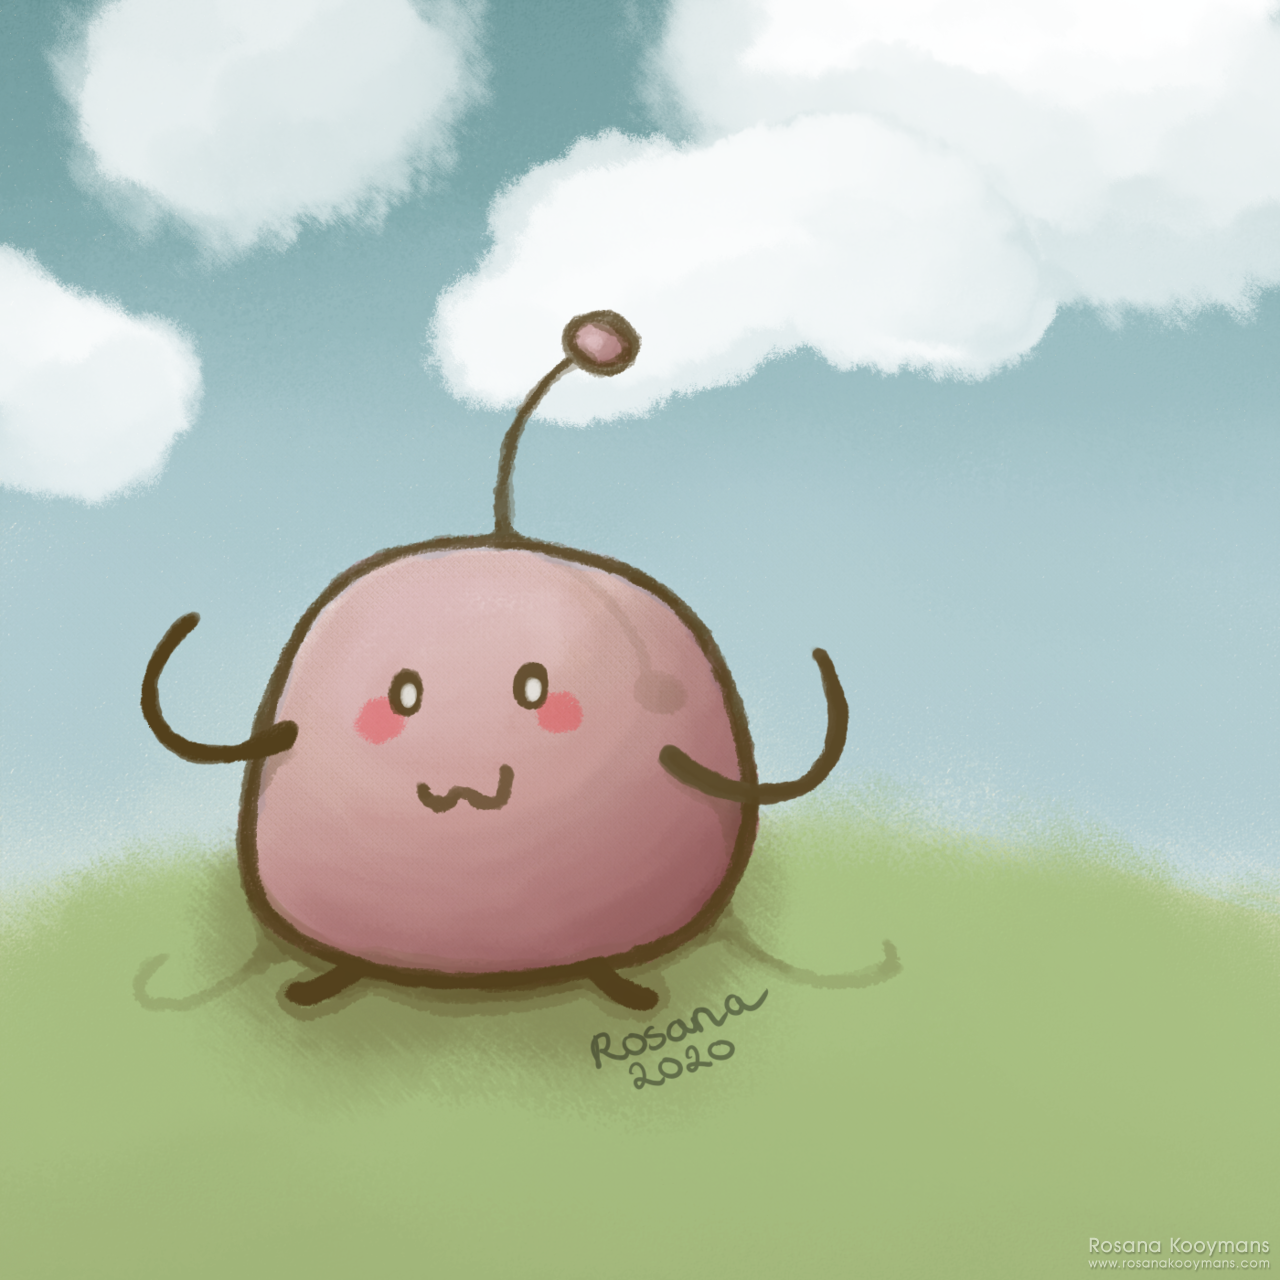 Junimo Illustration by Rosana Kooymans